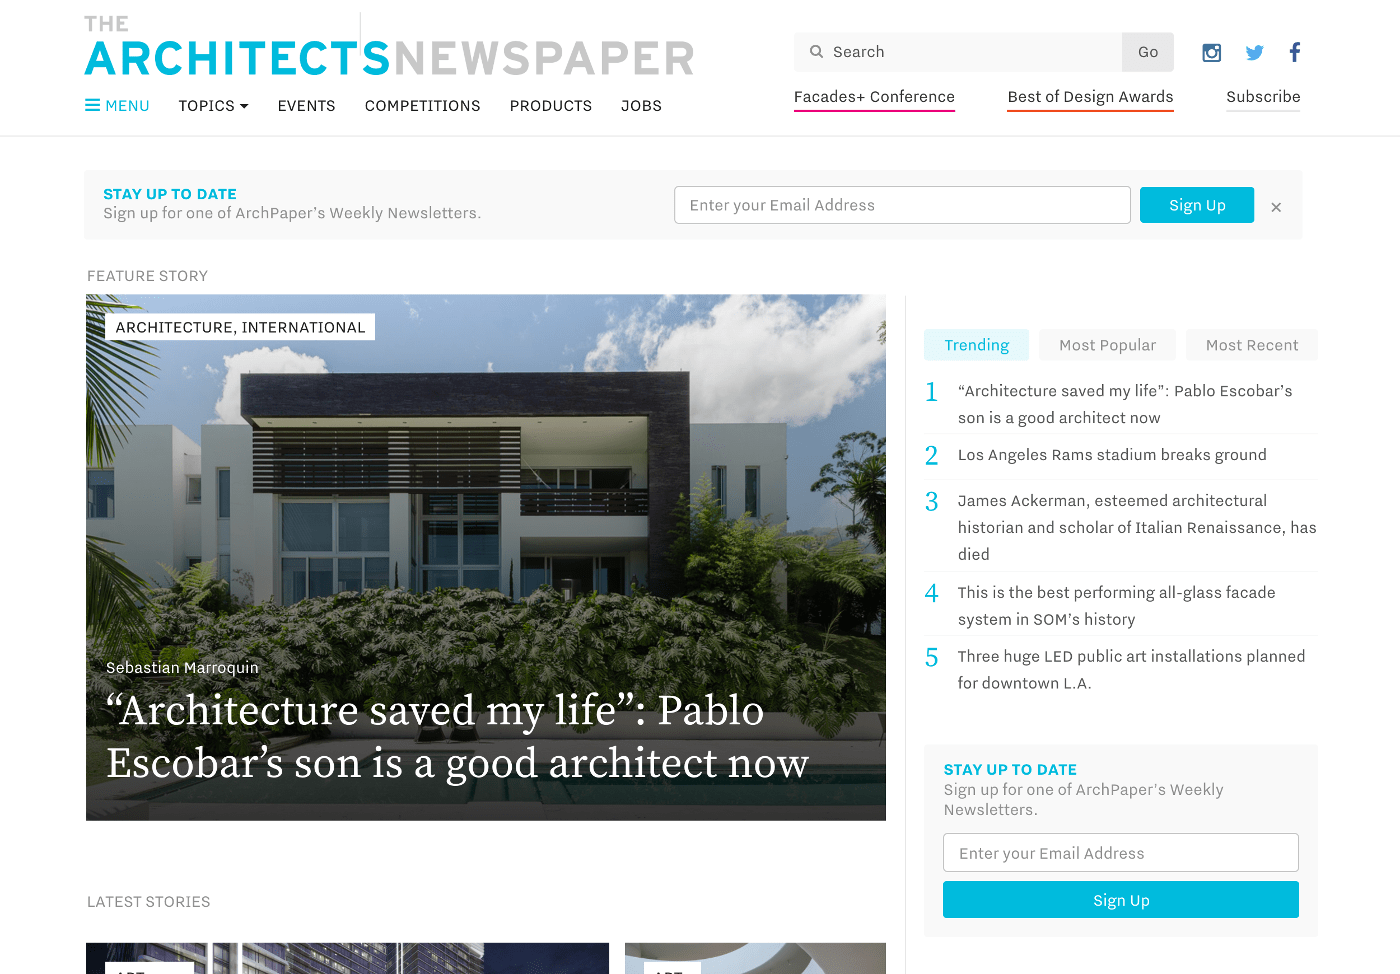 archpaper.com in January, 2017